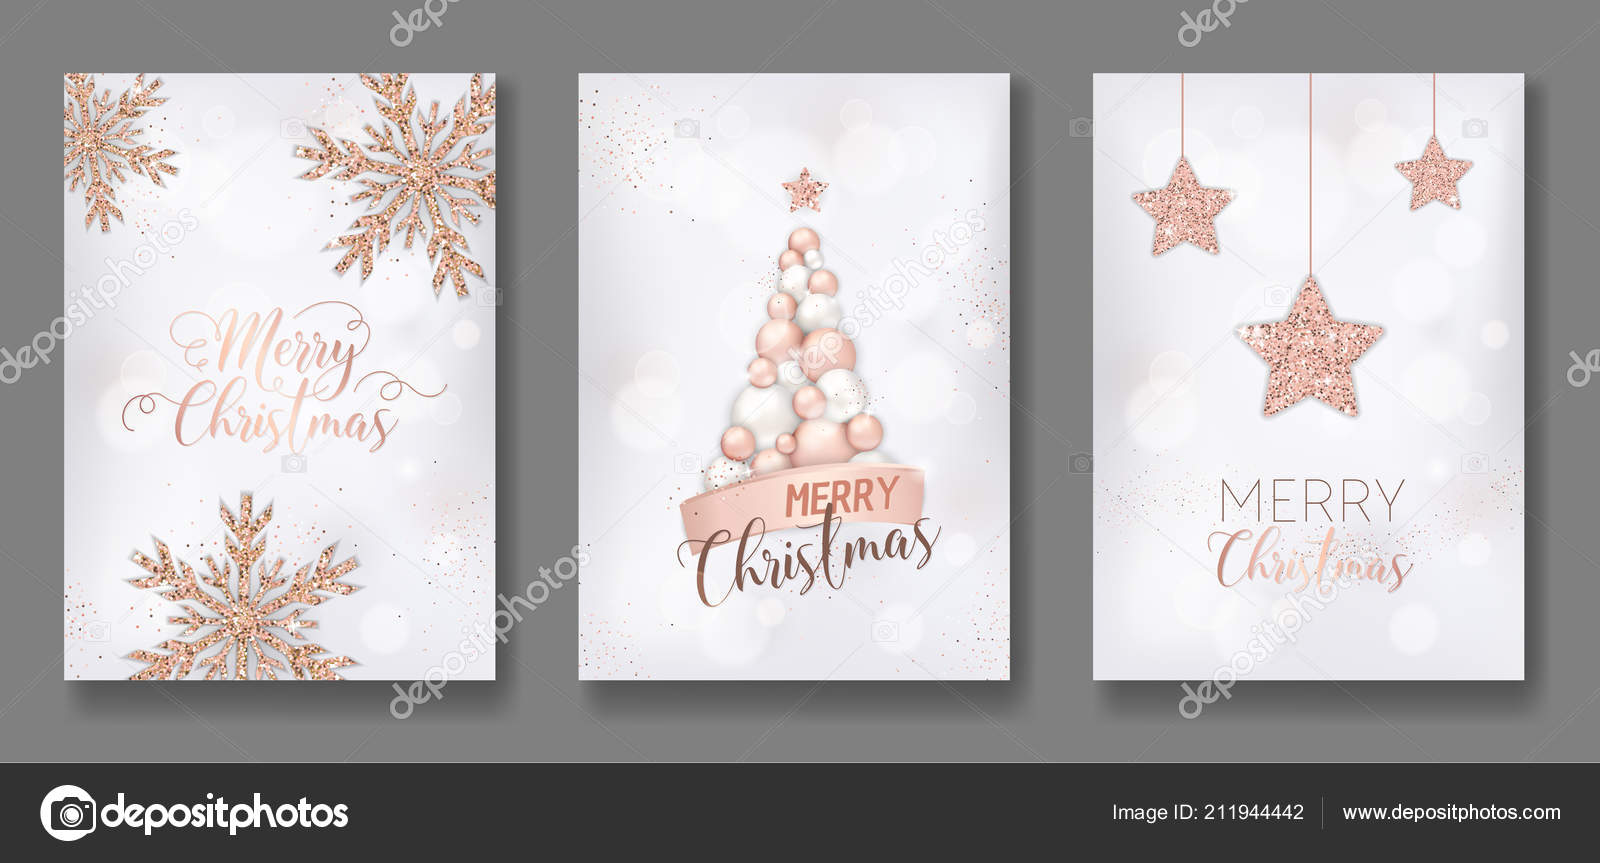 Glitter Christmas Cards.Vector Collection Of Merry Christmas Cards With Rose Gold